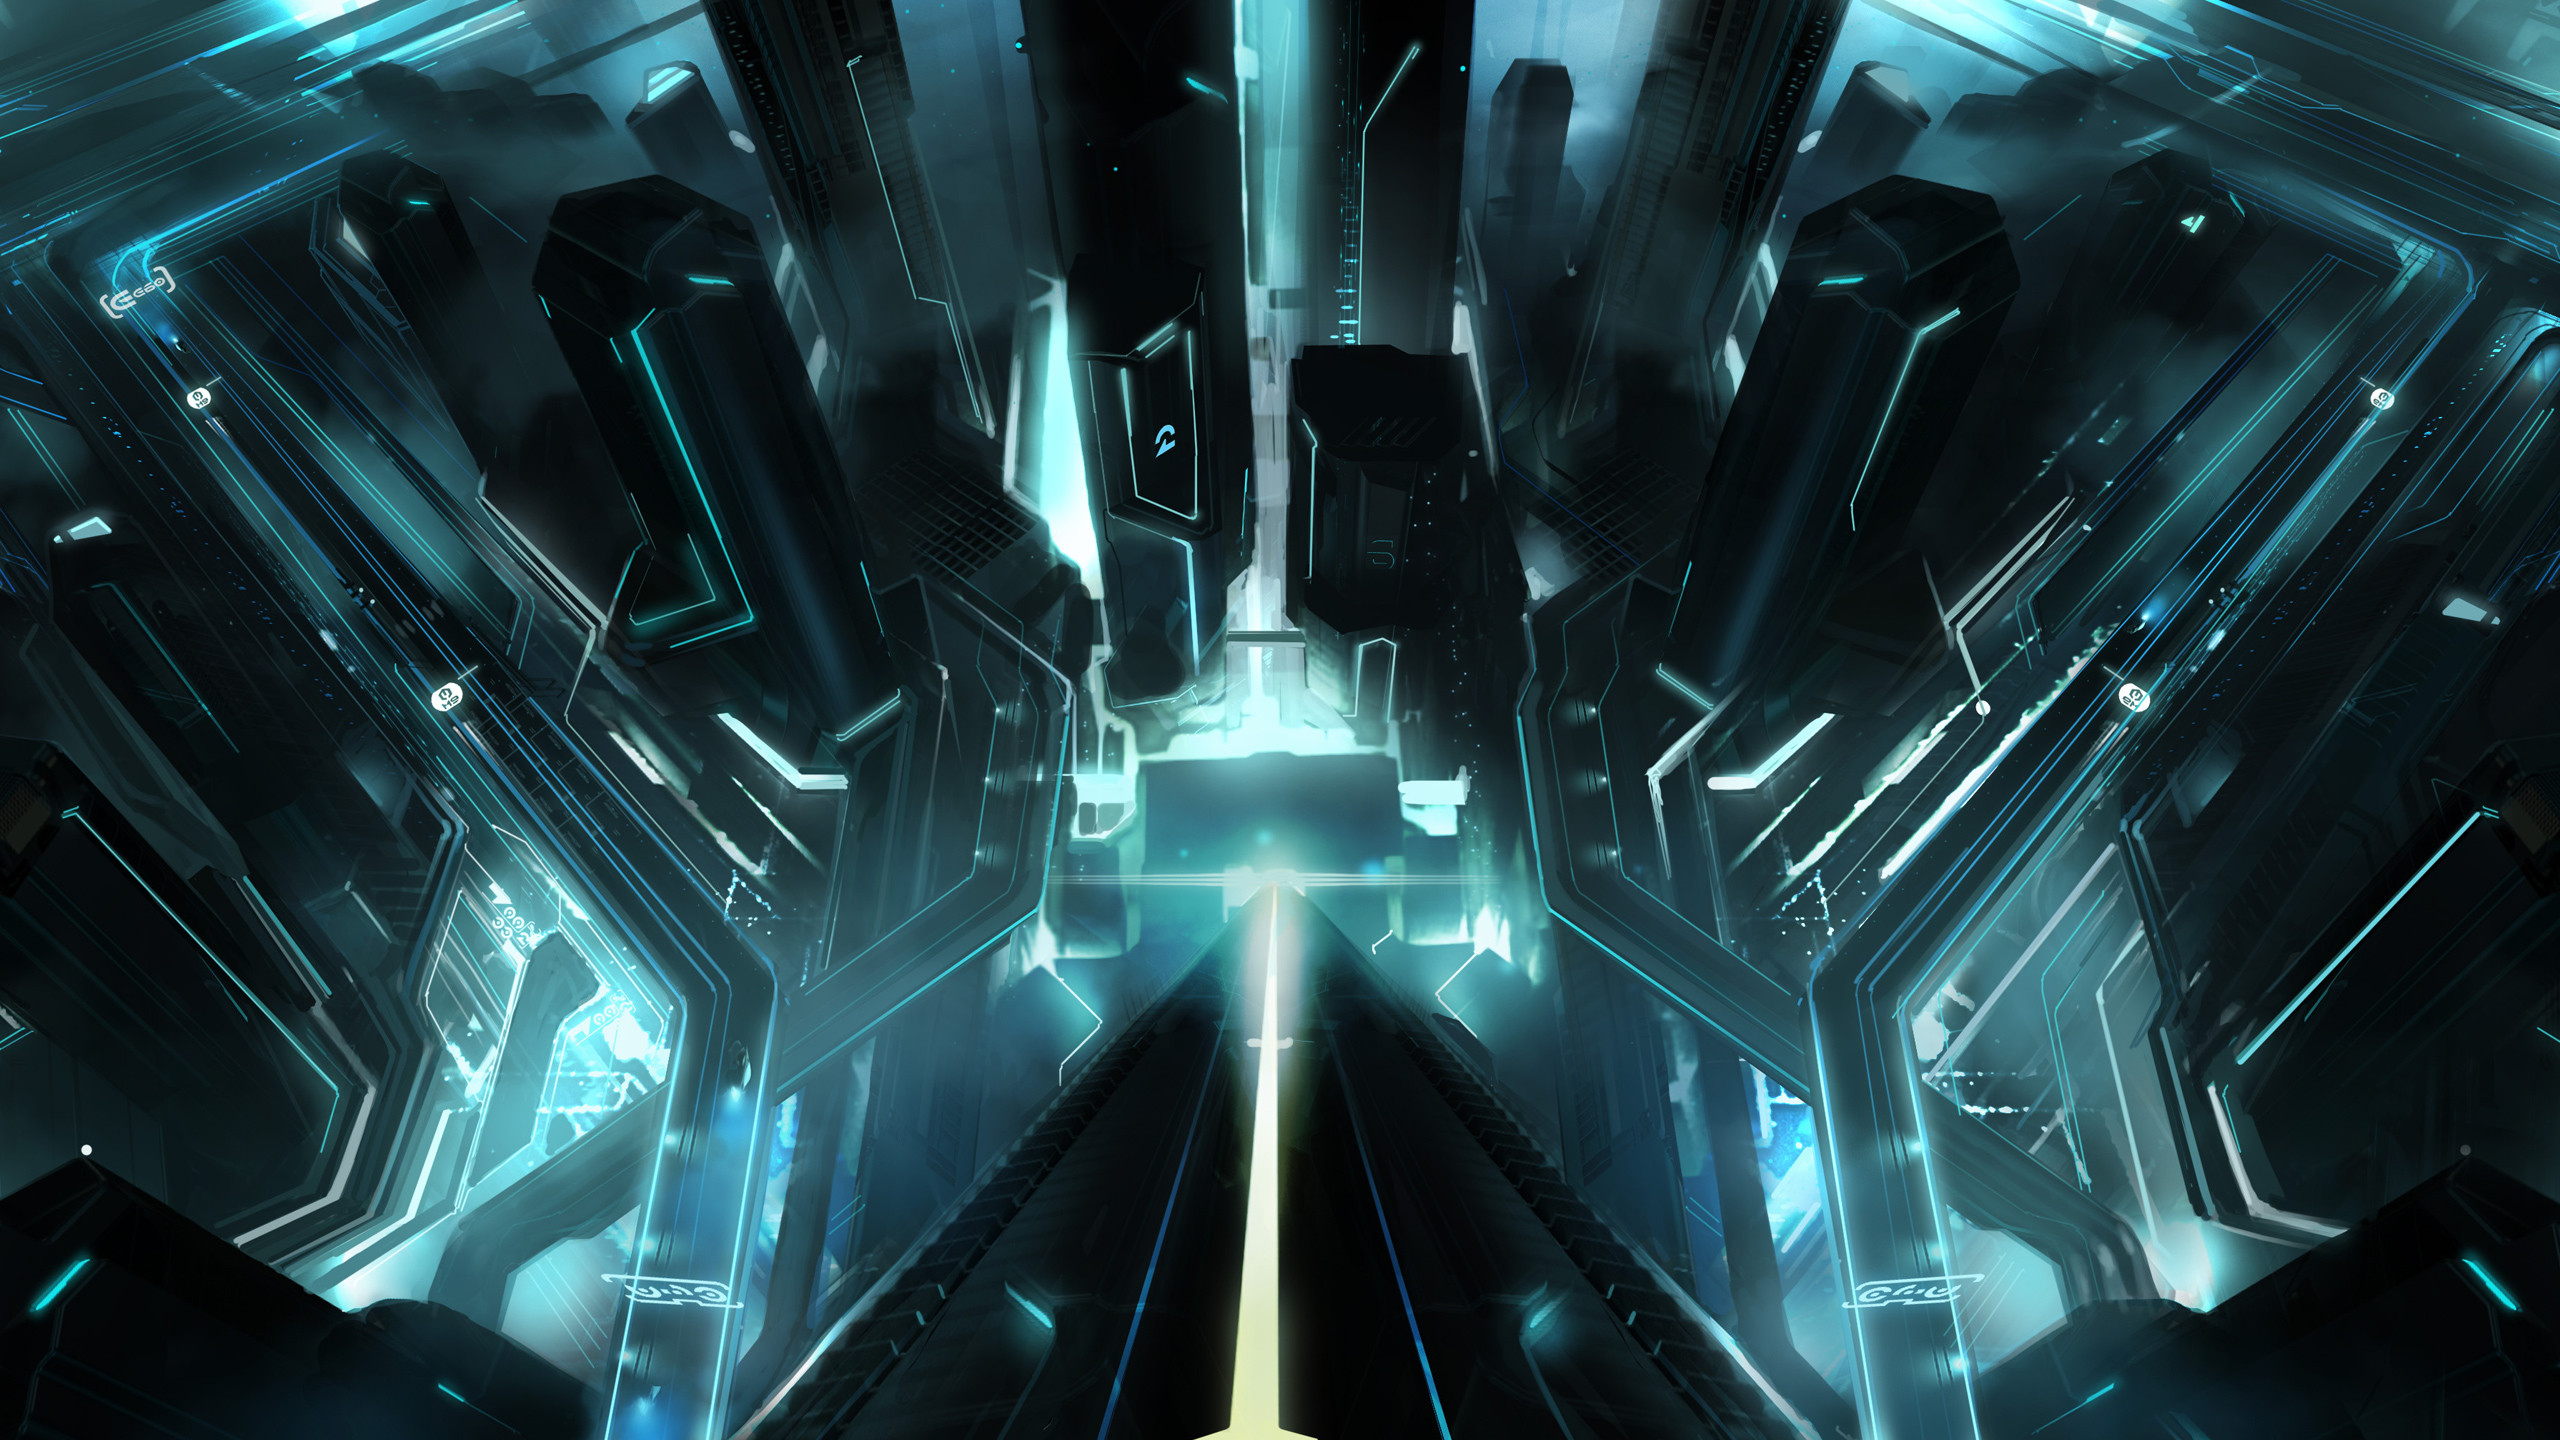 2560x1440 Tron City Wallpapers | HD Wallpapers